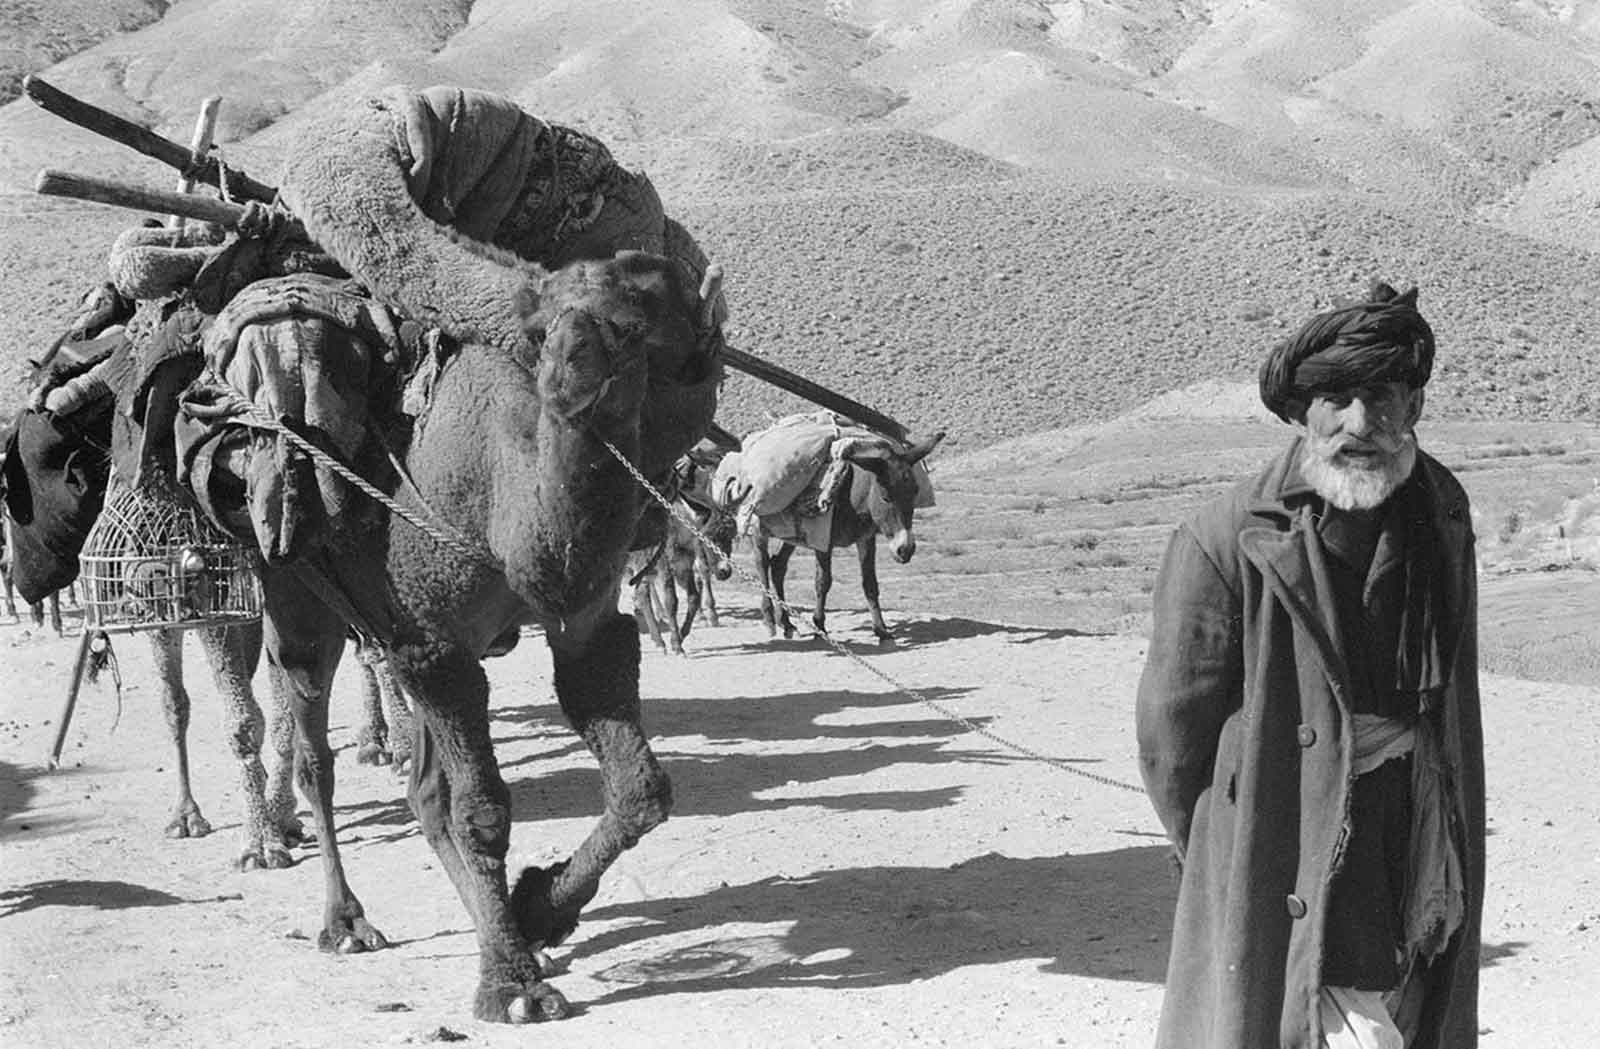 Afghan man leading laden camels and donkeys through an arid, rocky landscape, in November, 1959.